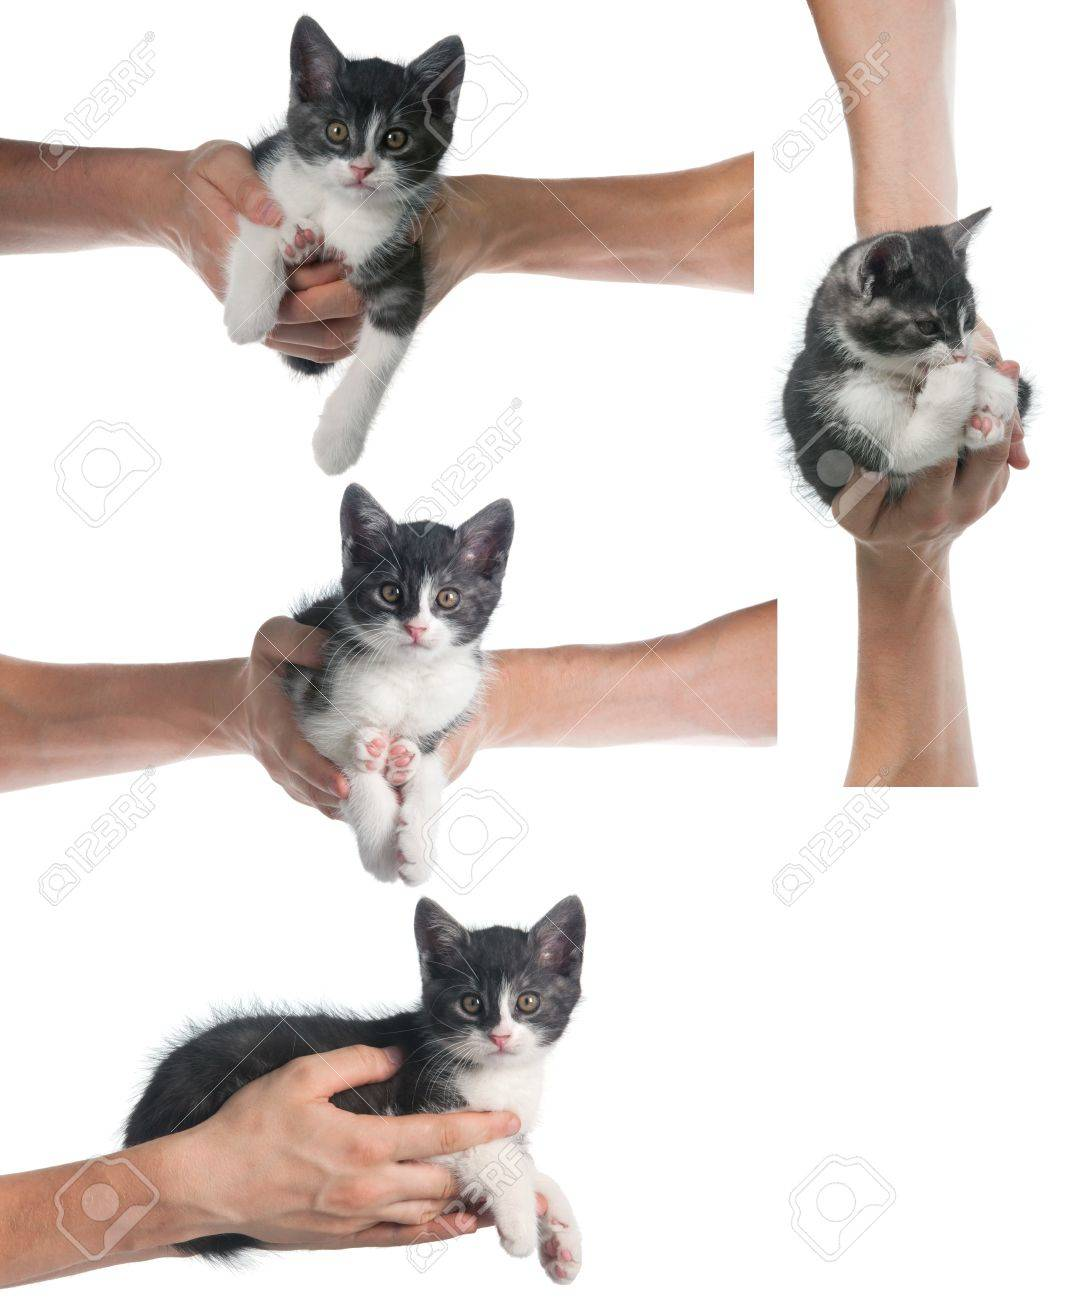 Hands holding a kitten on white background - isolated object Stock Photo - 14394724